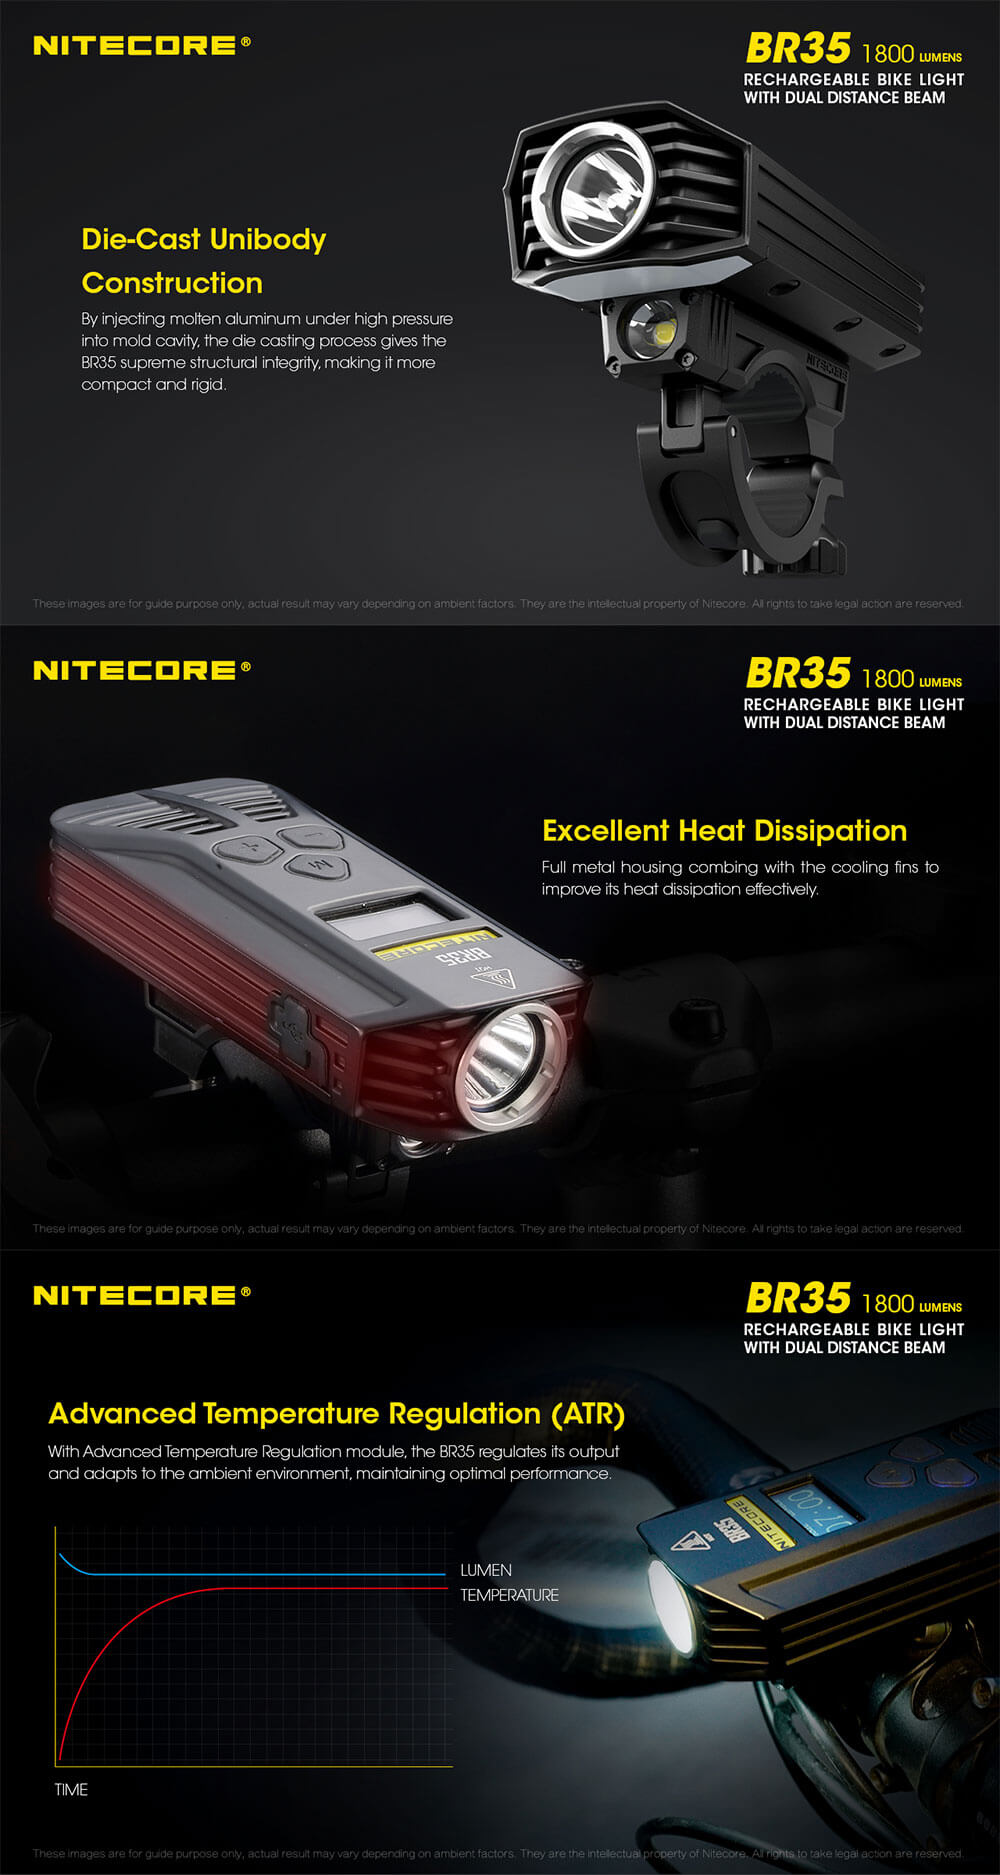 br35 1800 Lm bike light